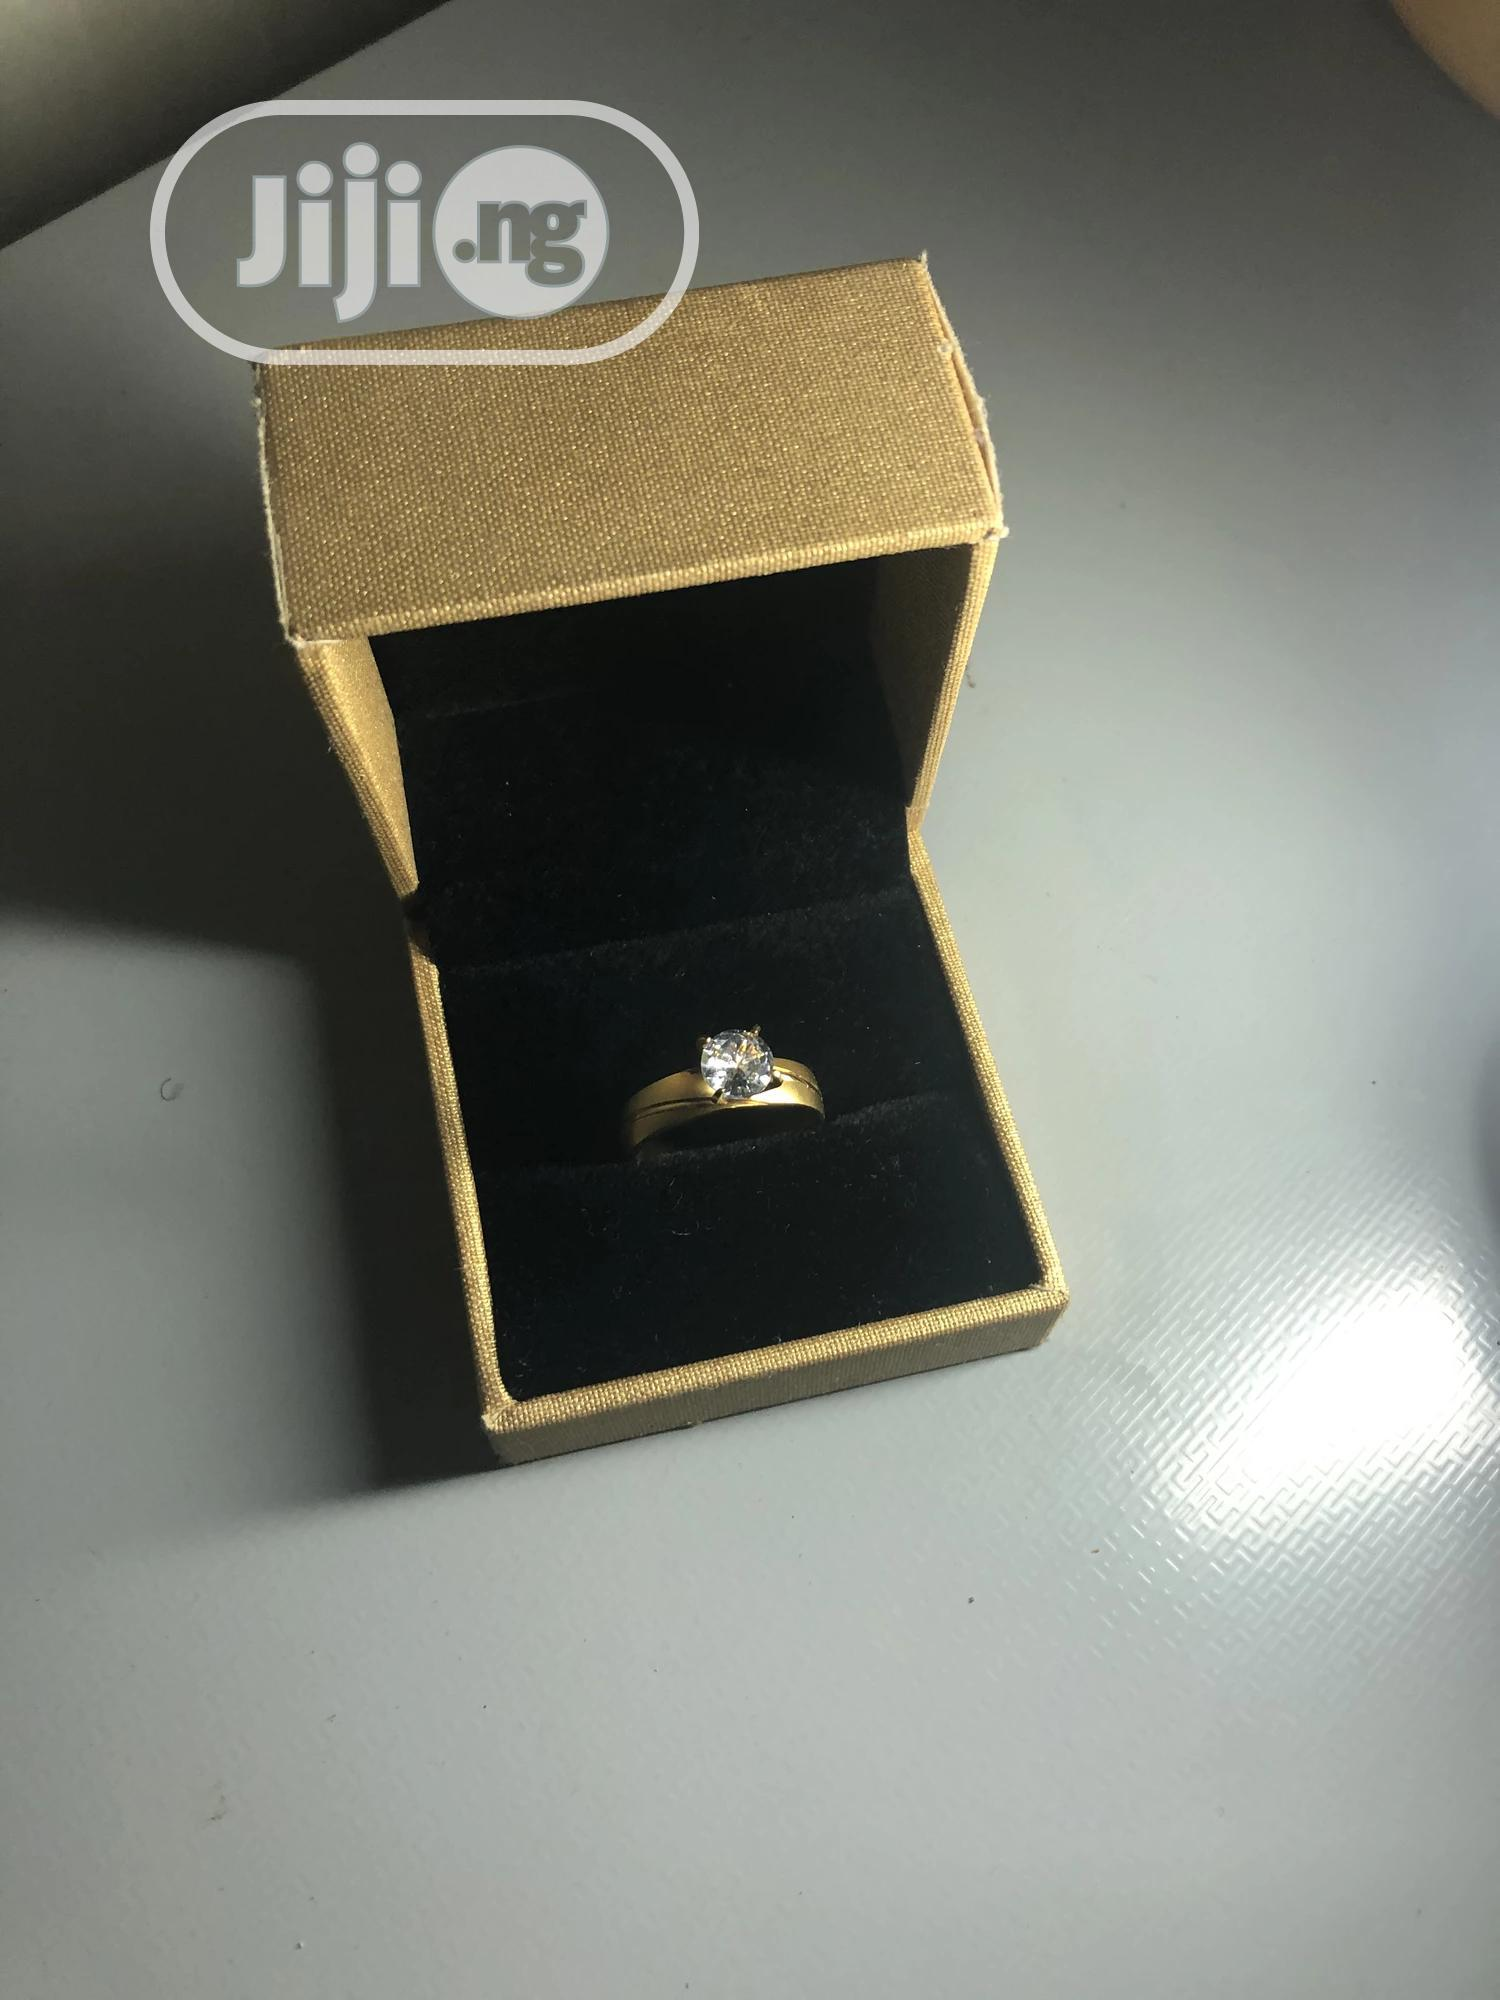 Engagement Ring | Wedding Wear & Accessories for sale in Gbagada, Lagos State, Nigeria